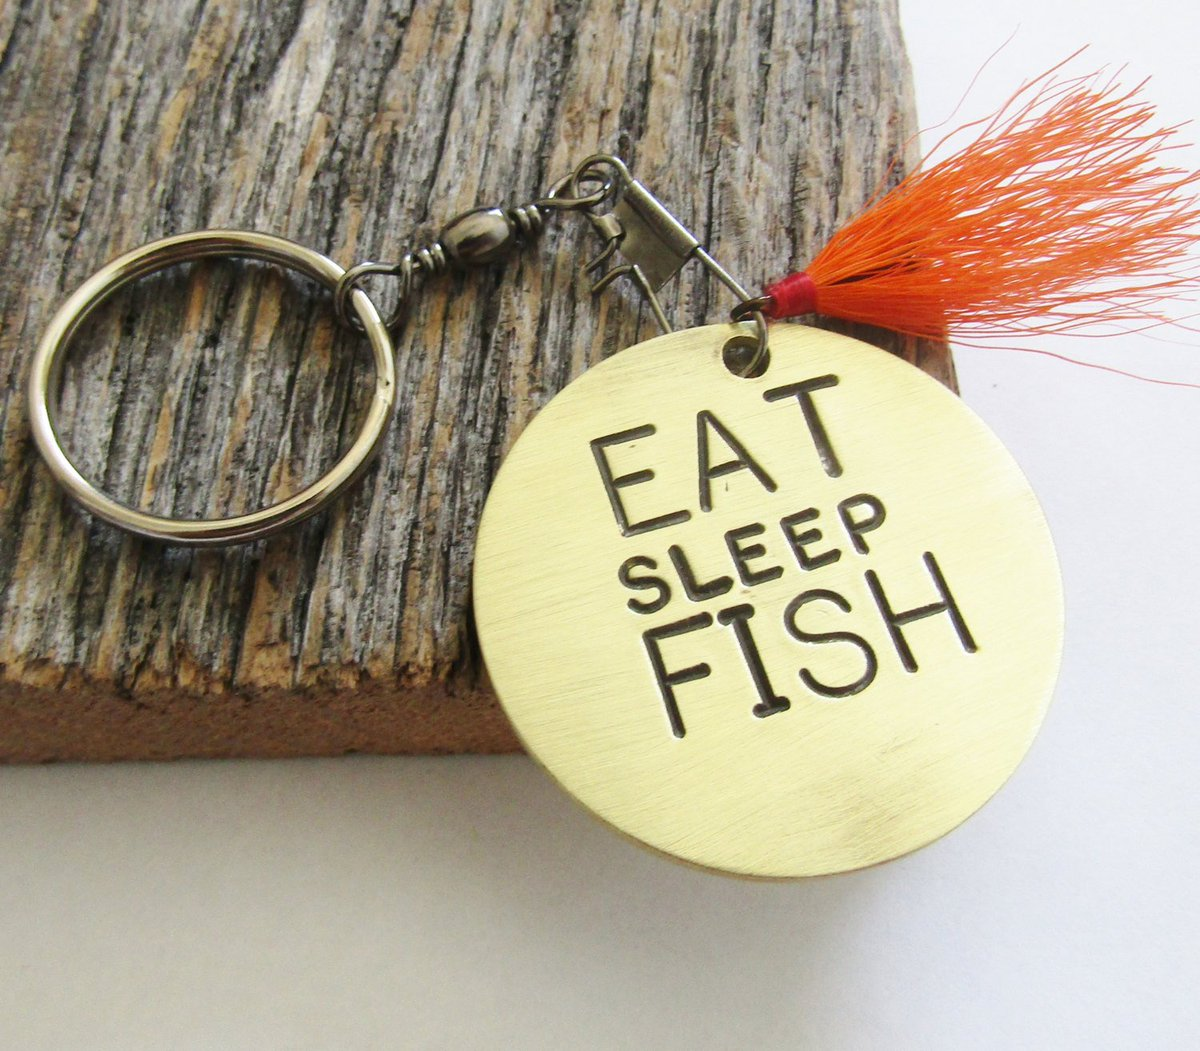 Eat Sleep Fish Keychain for Grandpa Custom Keychain for Him Fisherman Keychain Fly Fishing Keyring Fishing Quotes Christmas Gift for Him Dad http://tuppu.net/430aaf45 #Shopify #CandTCustomLures #Accessories